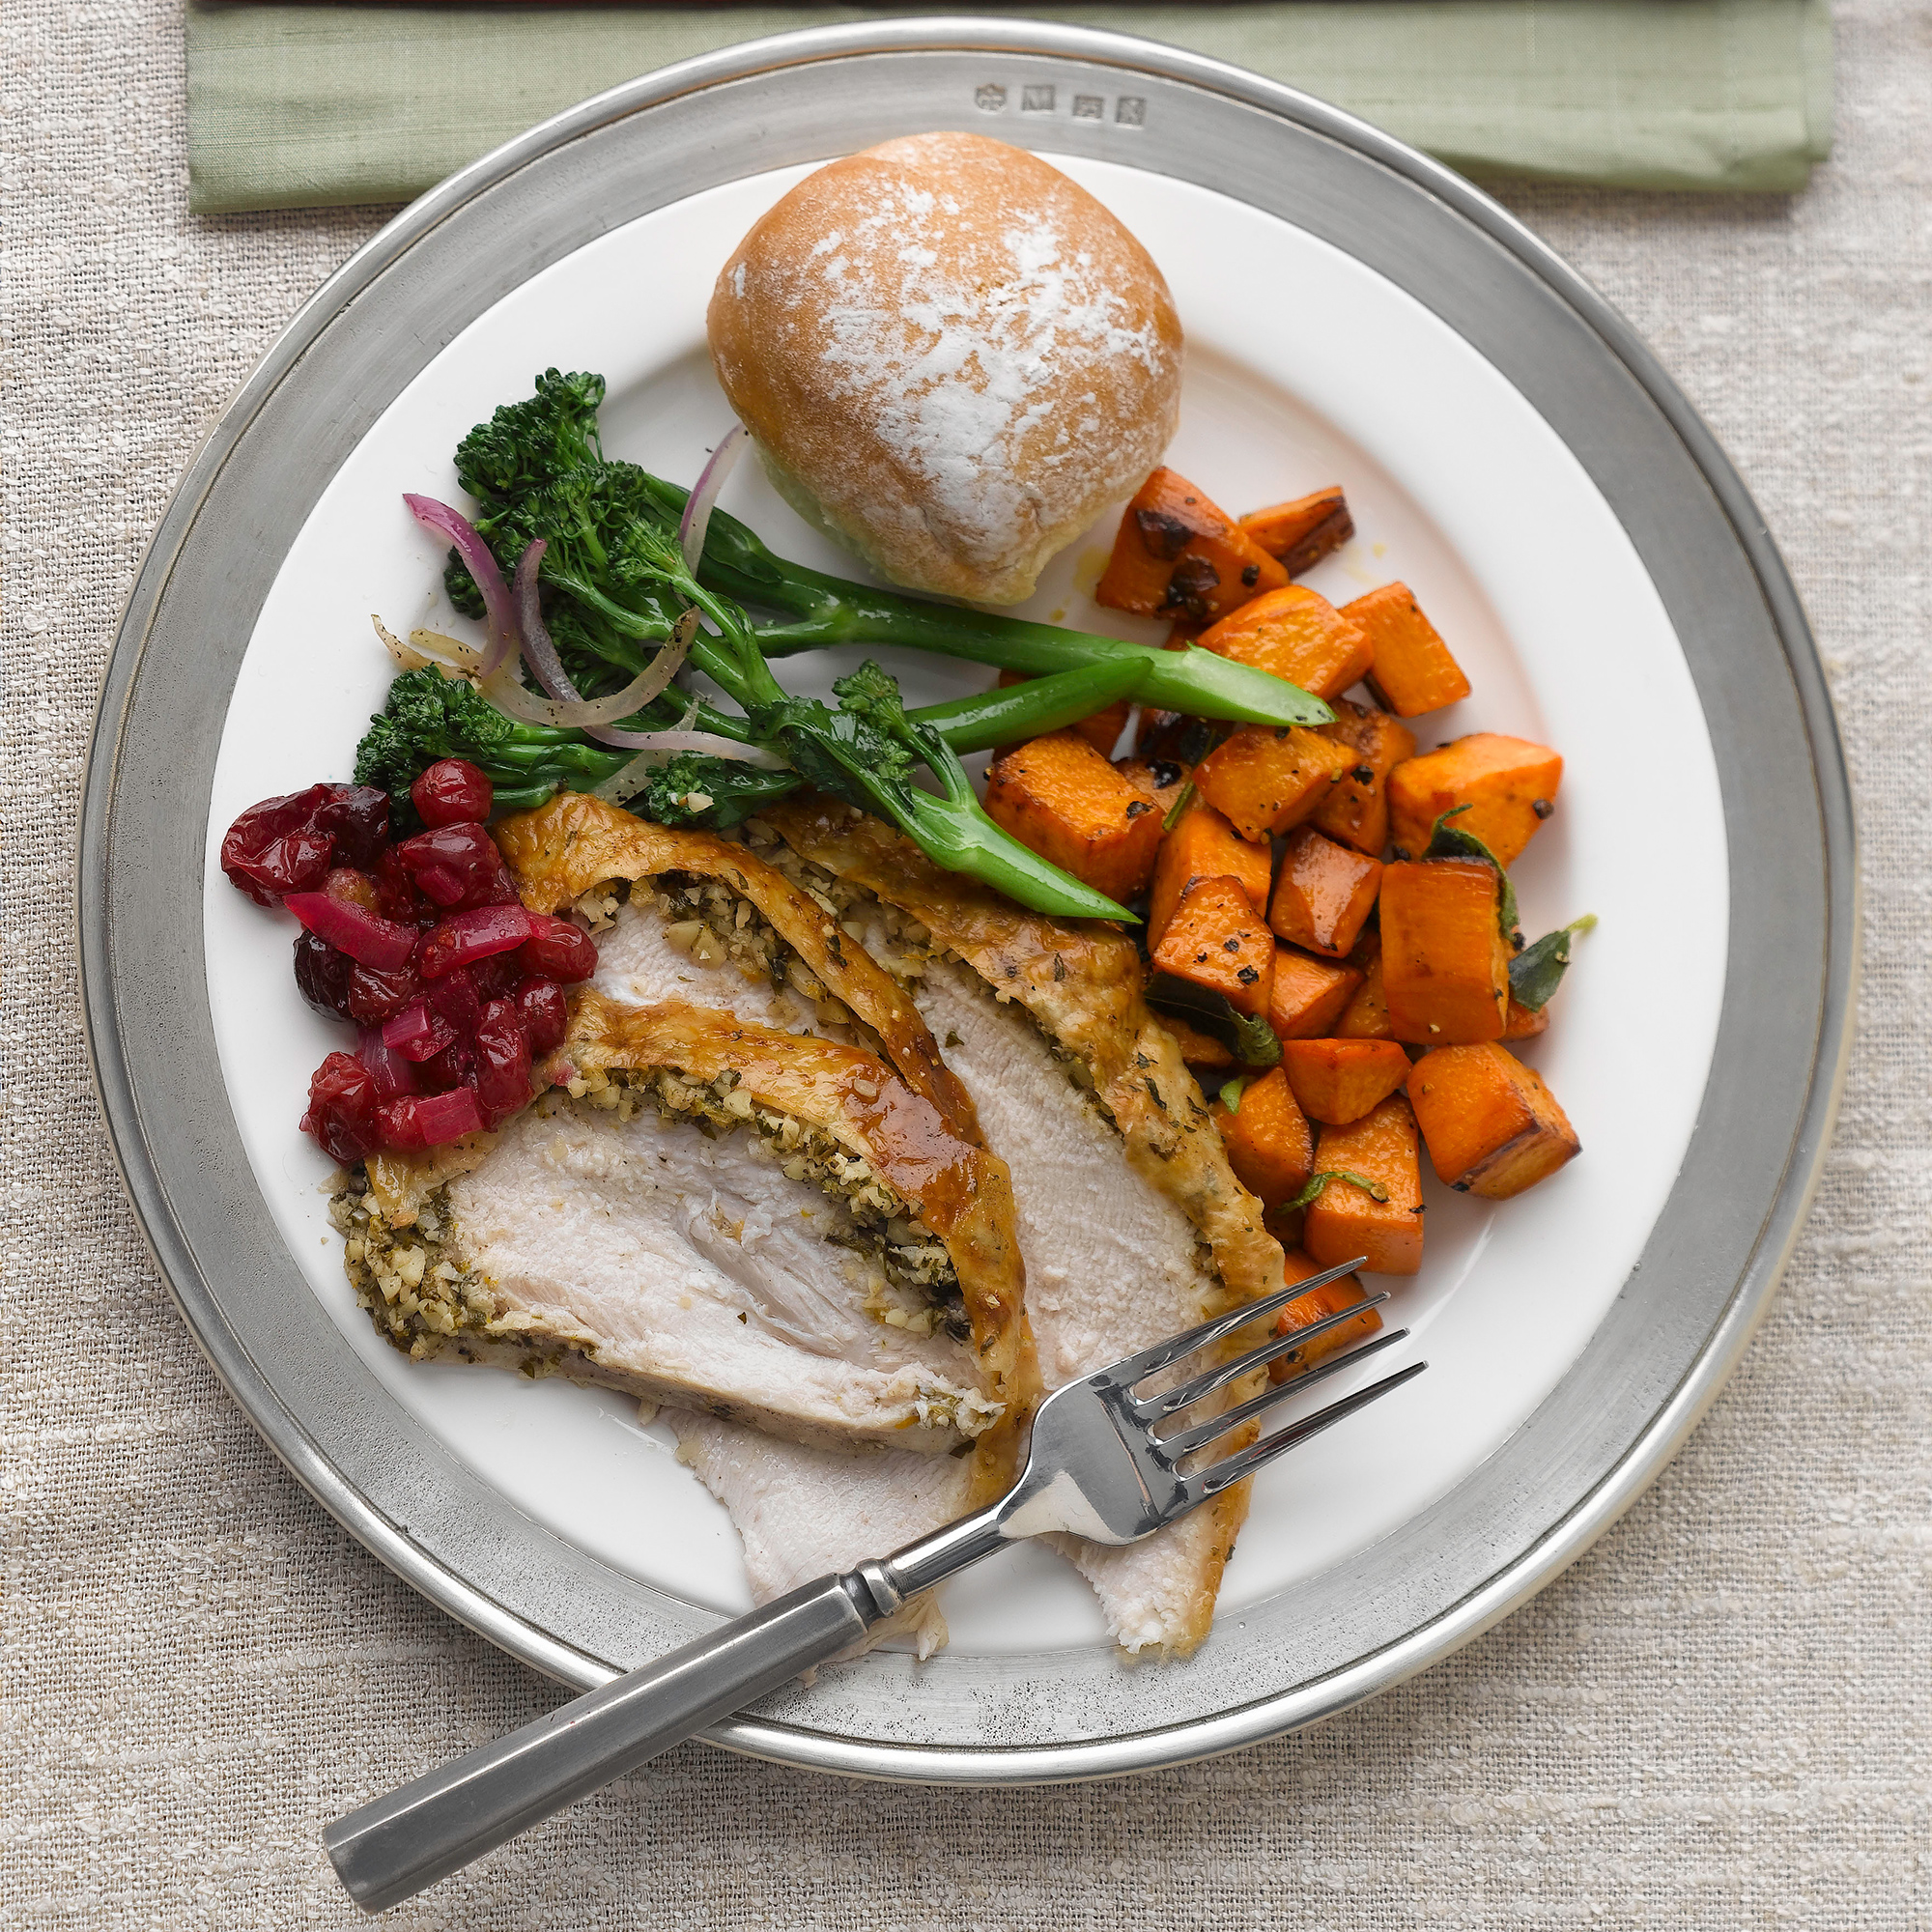 plate with turkey breast, broccoli, sweet potatoes, cranberry sauce, and rolls